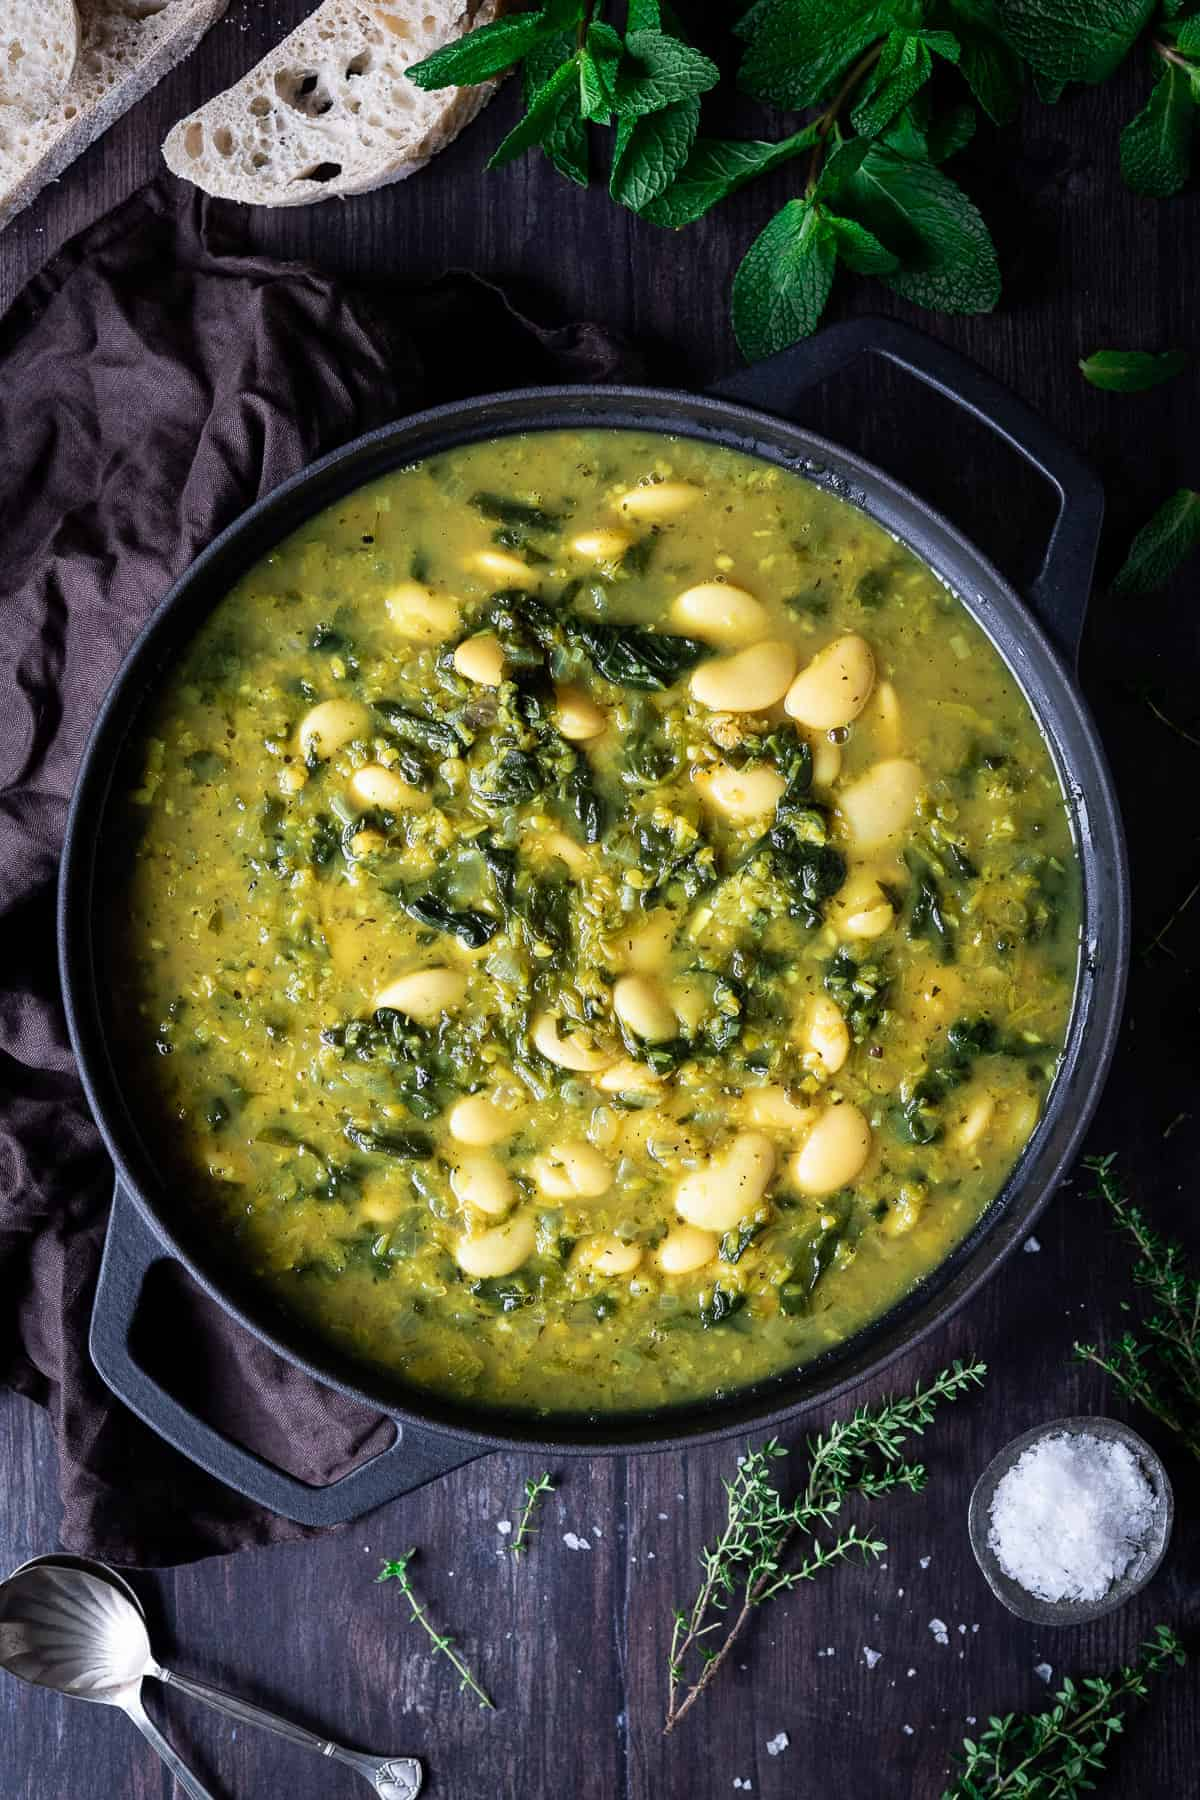 Spinach, lentil and butter bean soup in a black pan on a wooden table with fresh herbs, slices of bread and a bowl of salt.